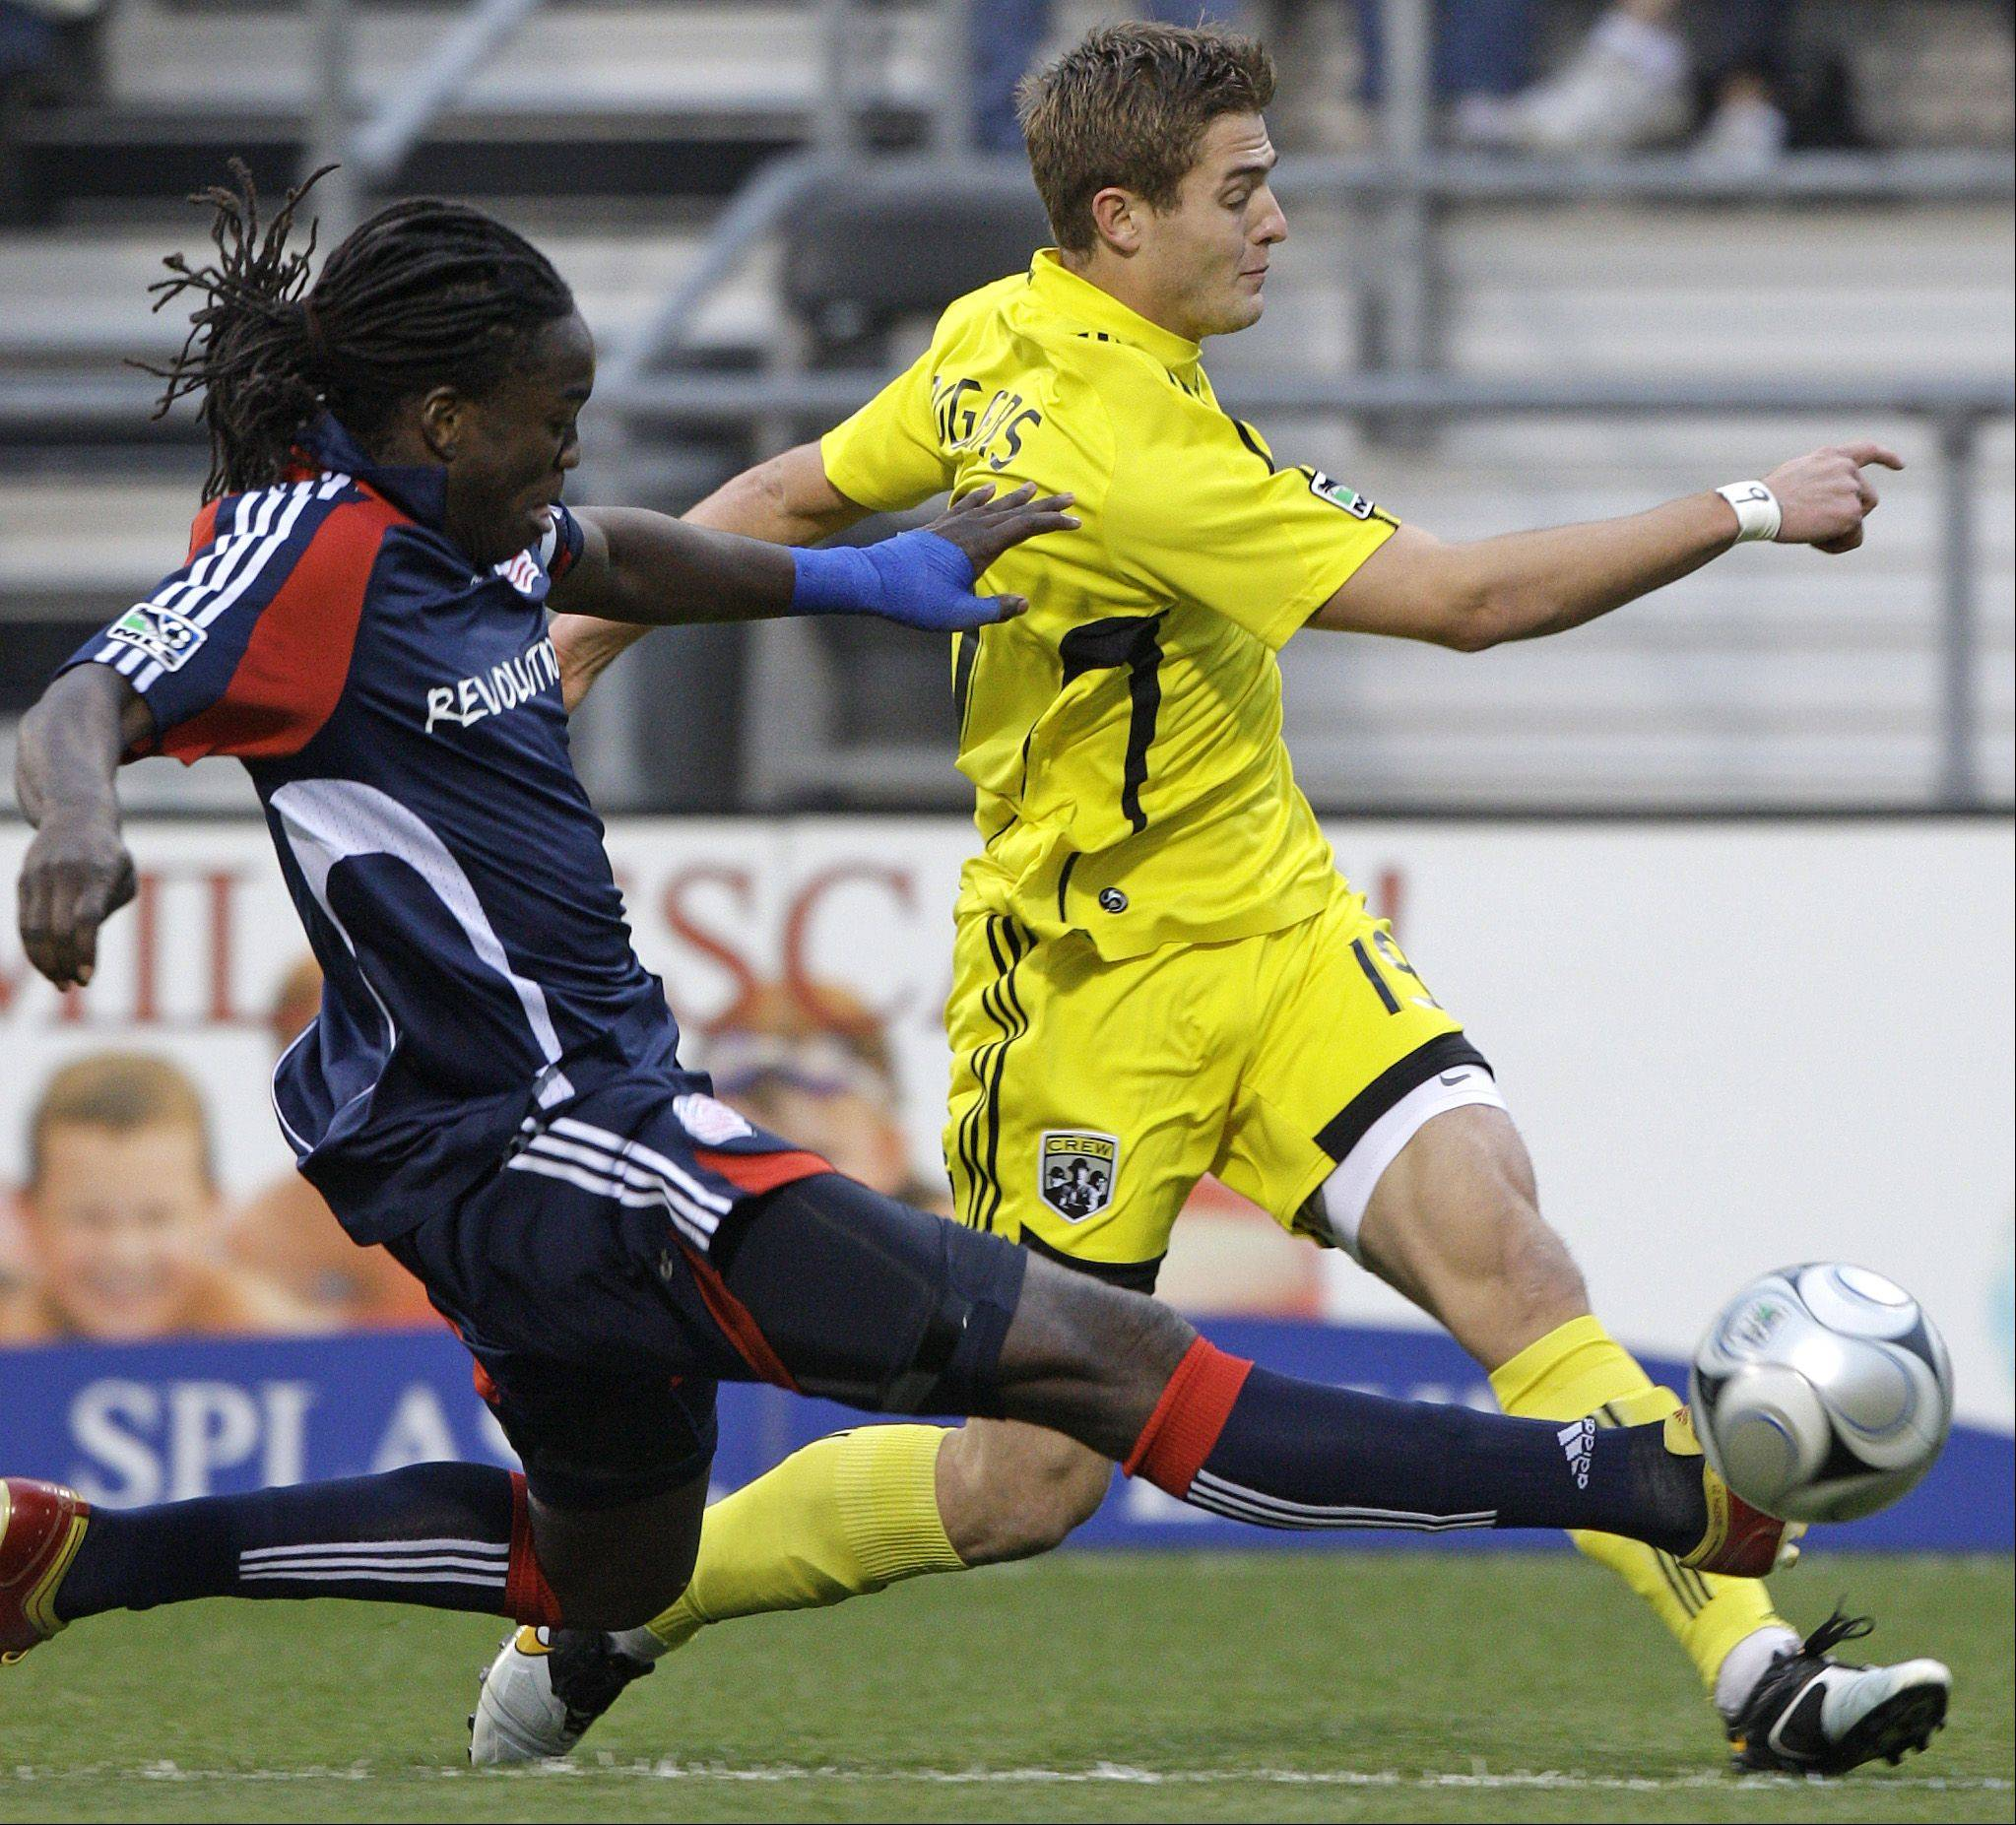 The Chicago Fire on Monday acquired the MLS rights to former Columbus Crew and Leeds United midfielder Robbie Rogers, right.